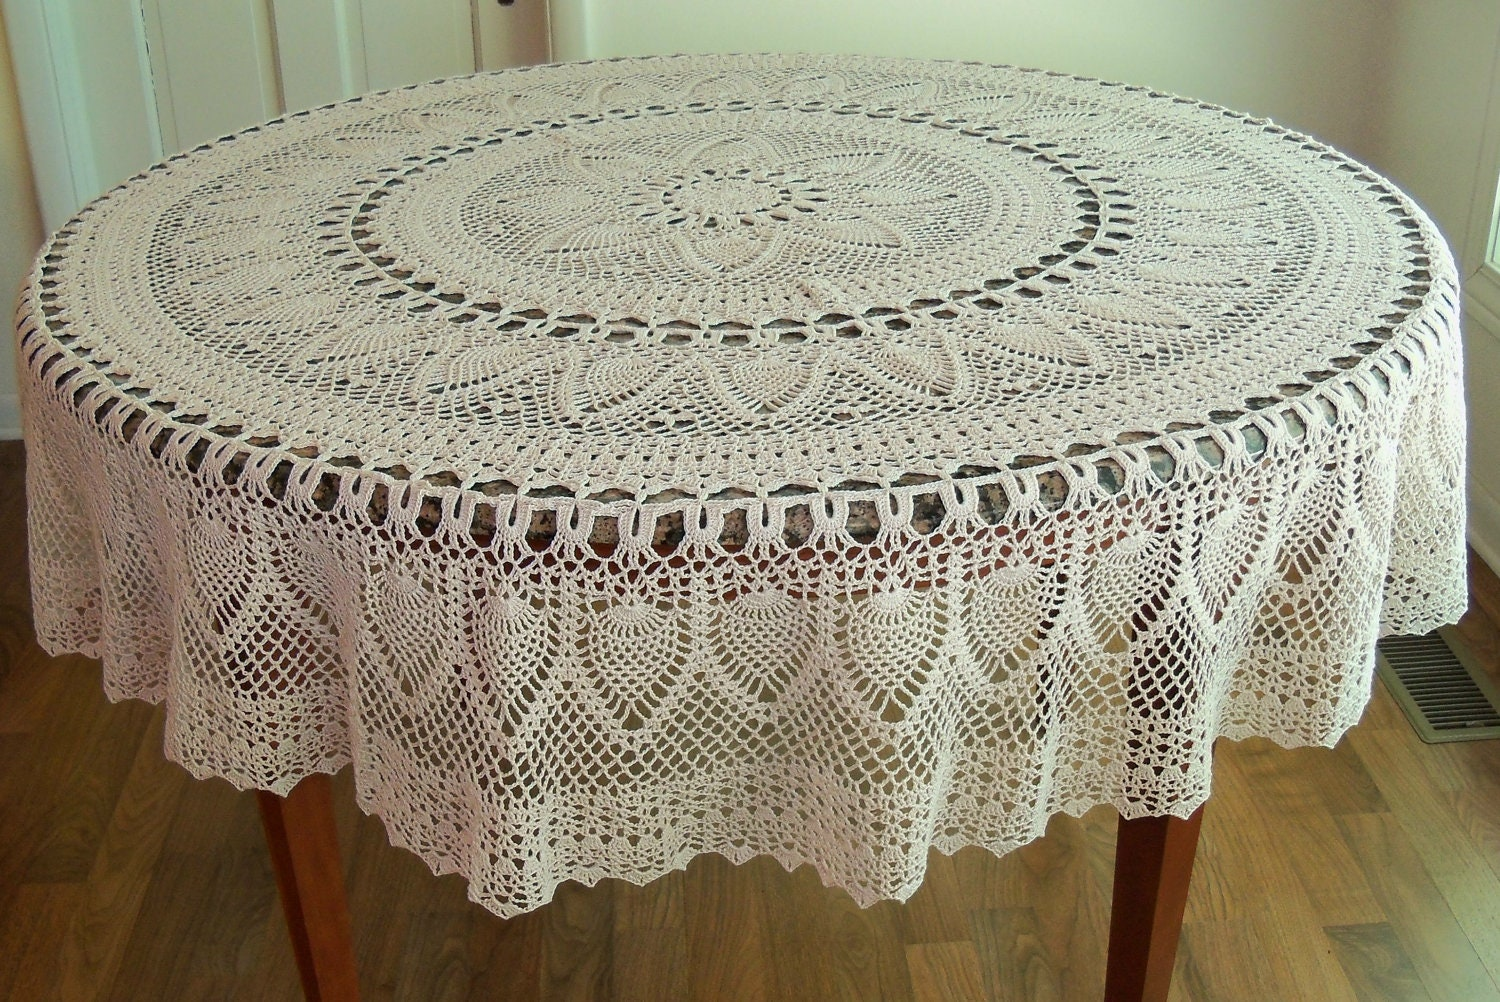 Free Crochet Pattern For Round Tablecloth : Handmade Crocheted Pineapple Tablecloth 70 inch Round Natural